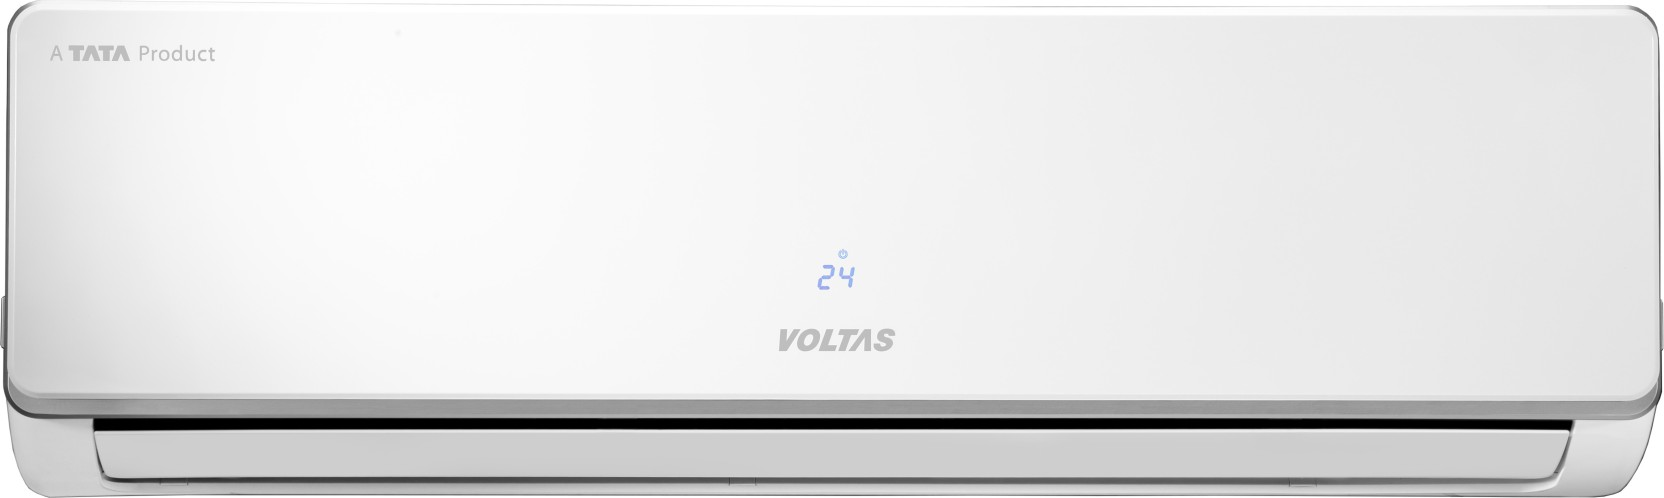 7c46e8d7151 Voltas 1.5 Ton 1 Star BEE Rating 2018 Split AC - White (181 SZS